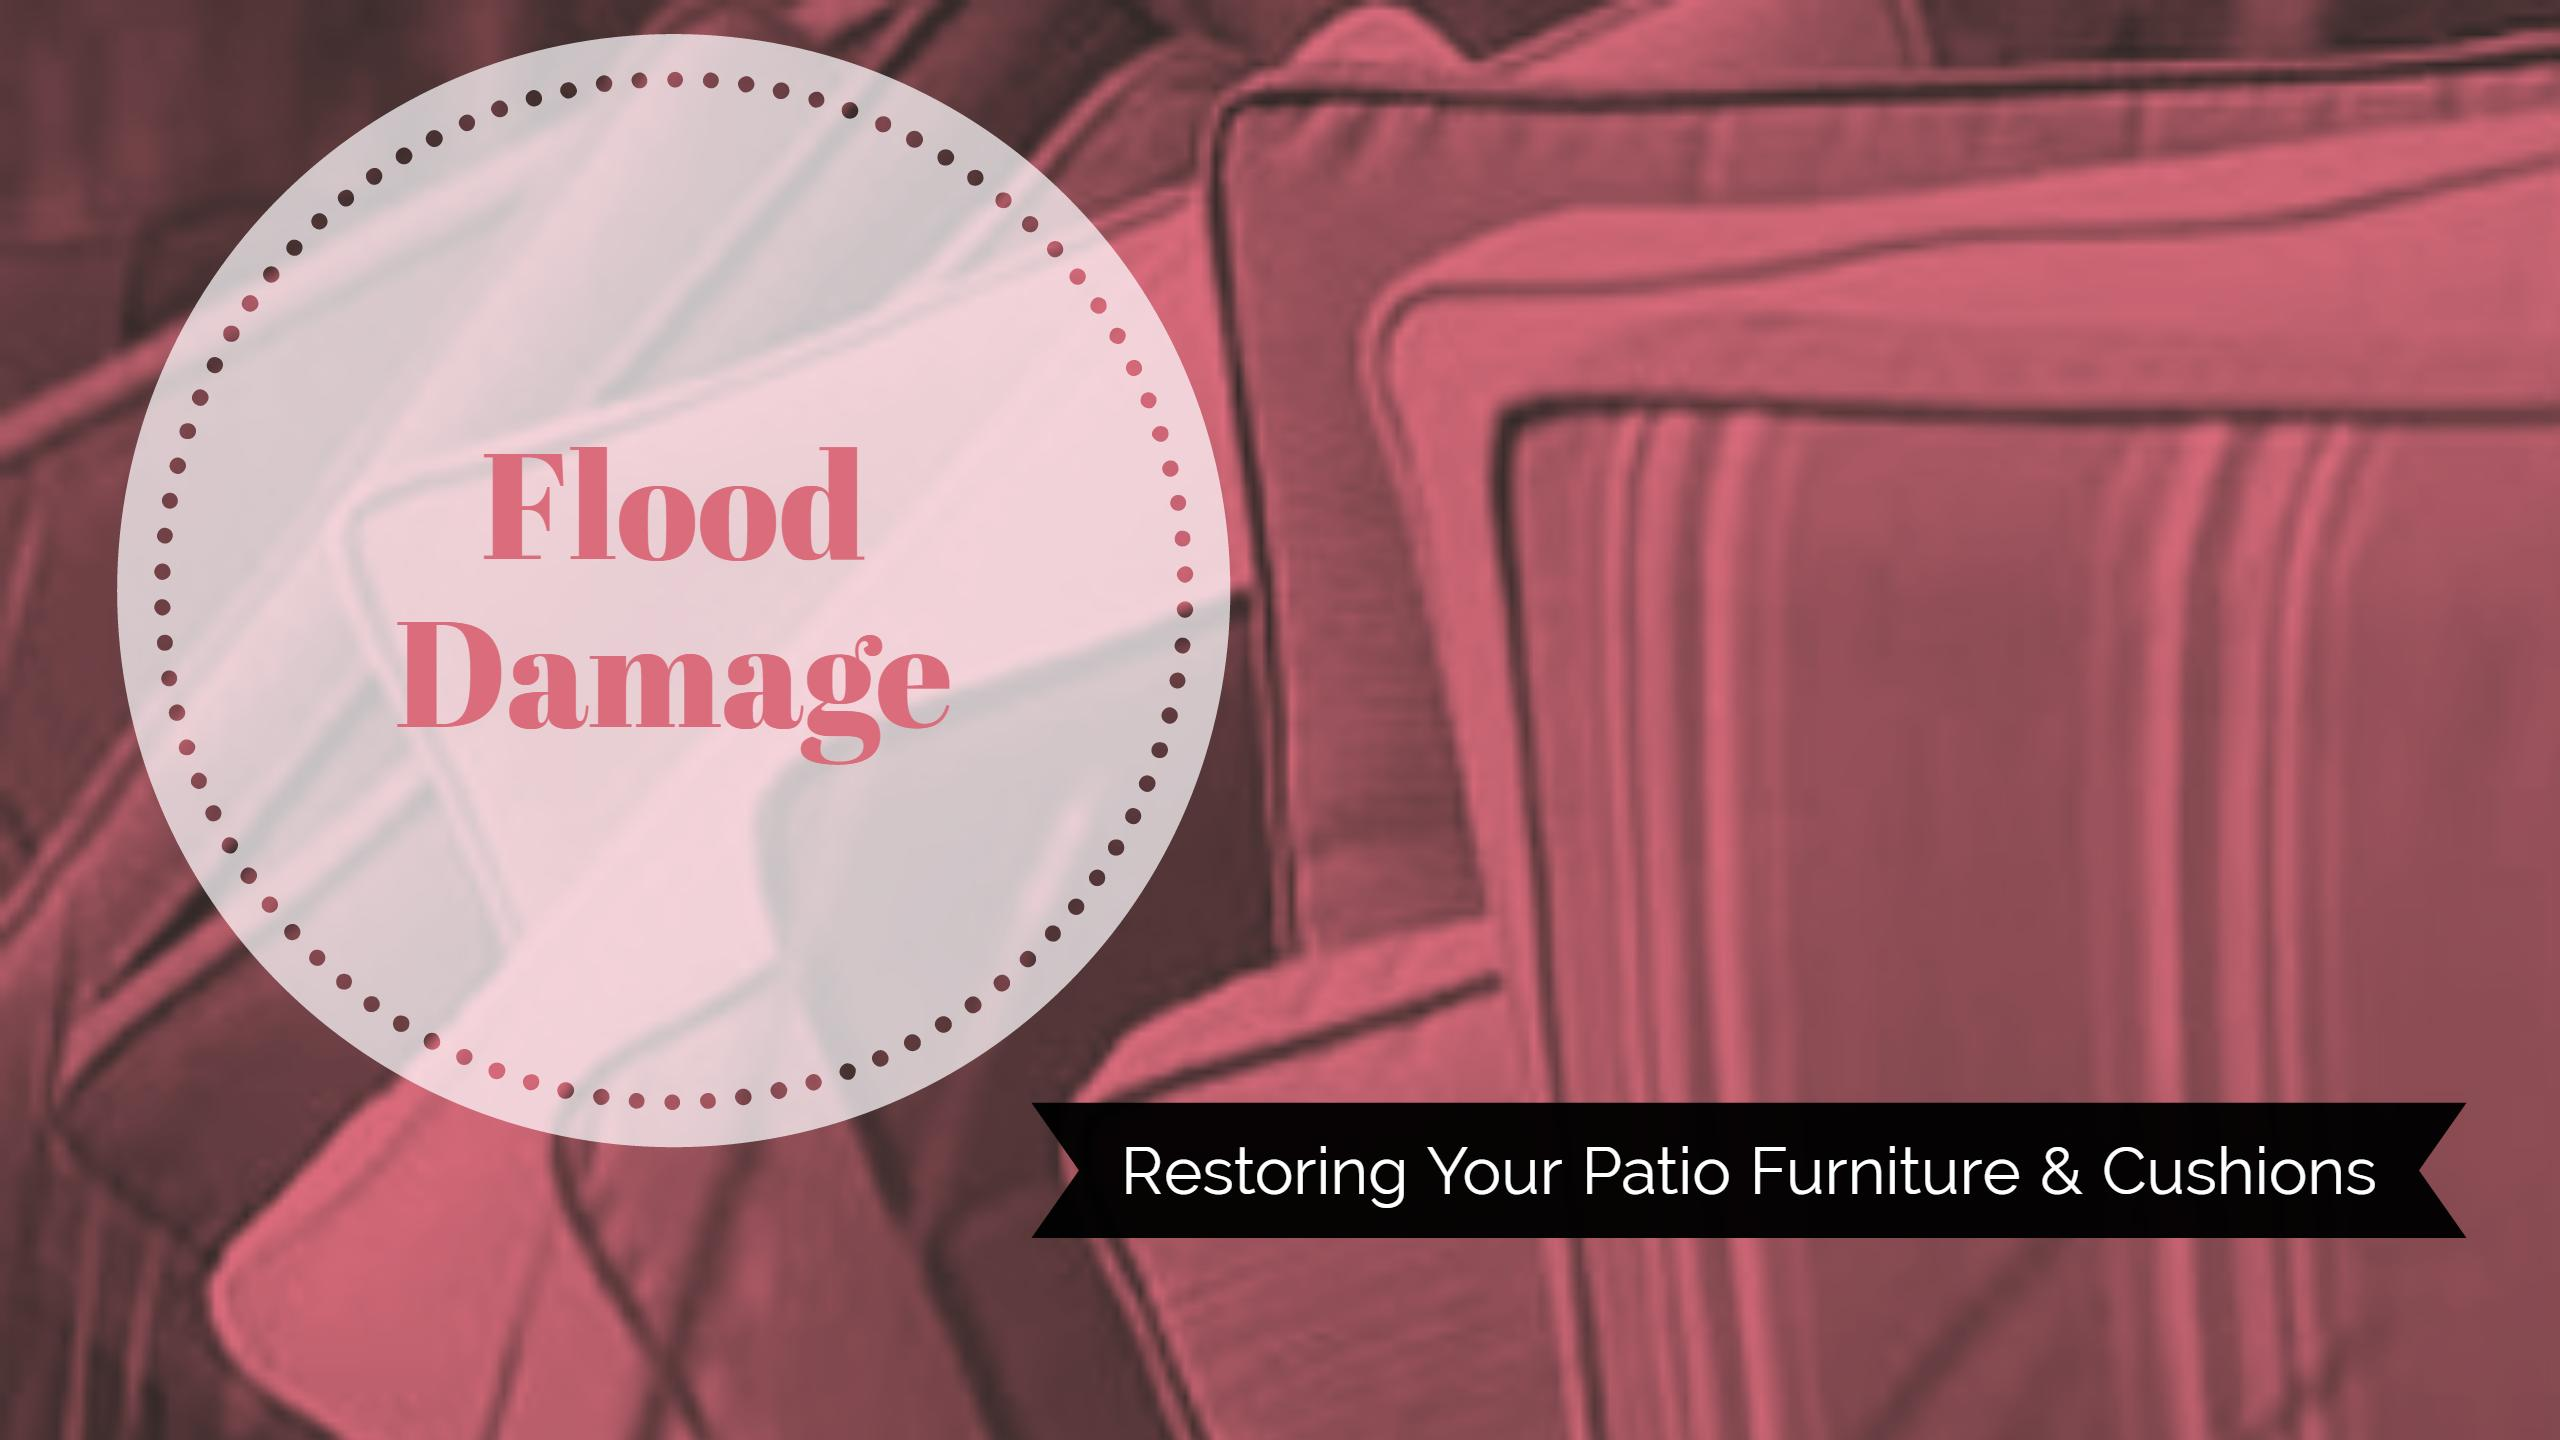 Restoring Patio Furniture After a Storm or Flood in Baton Rouge